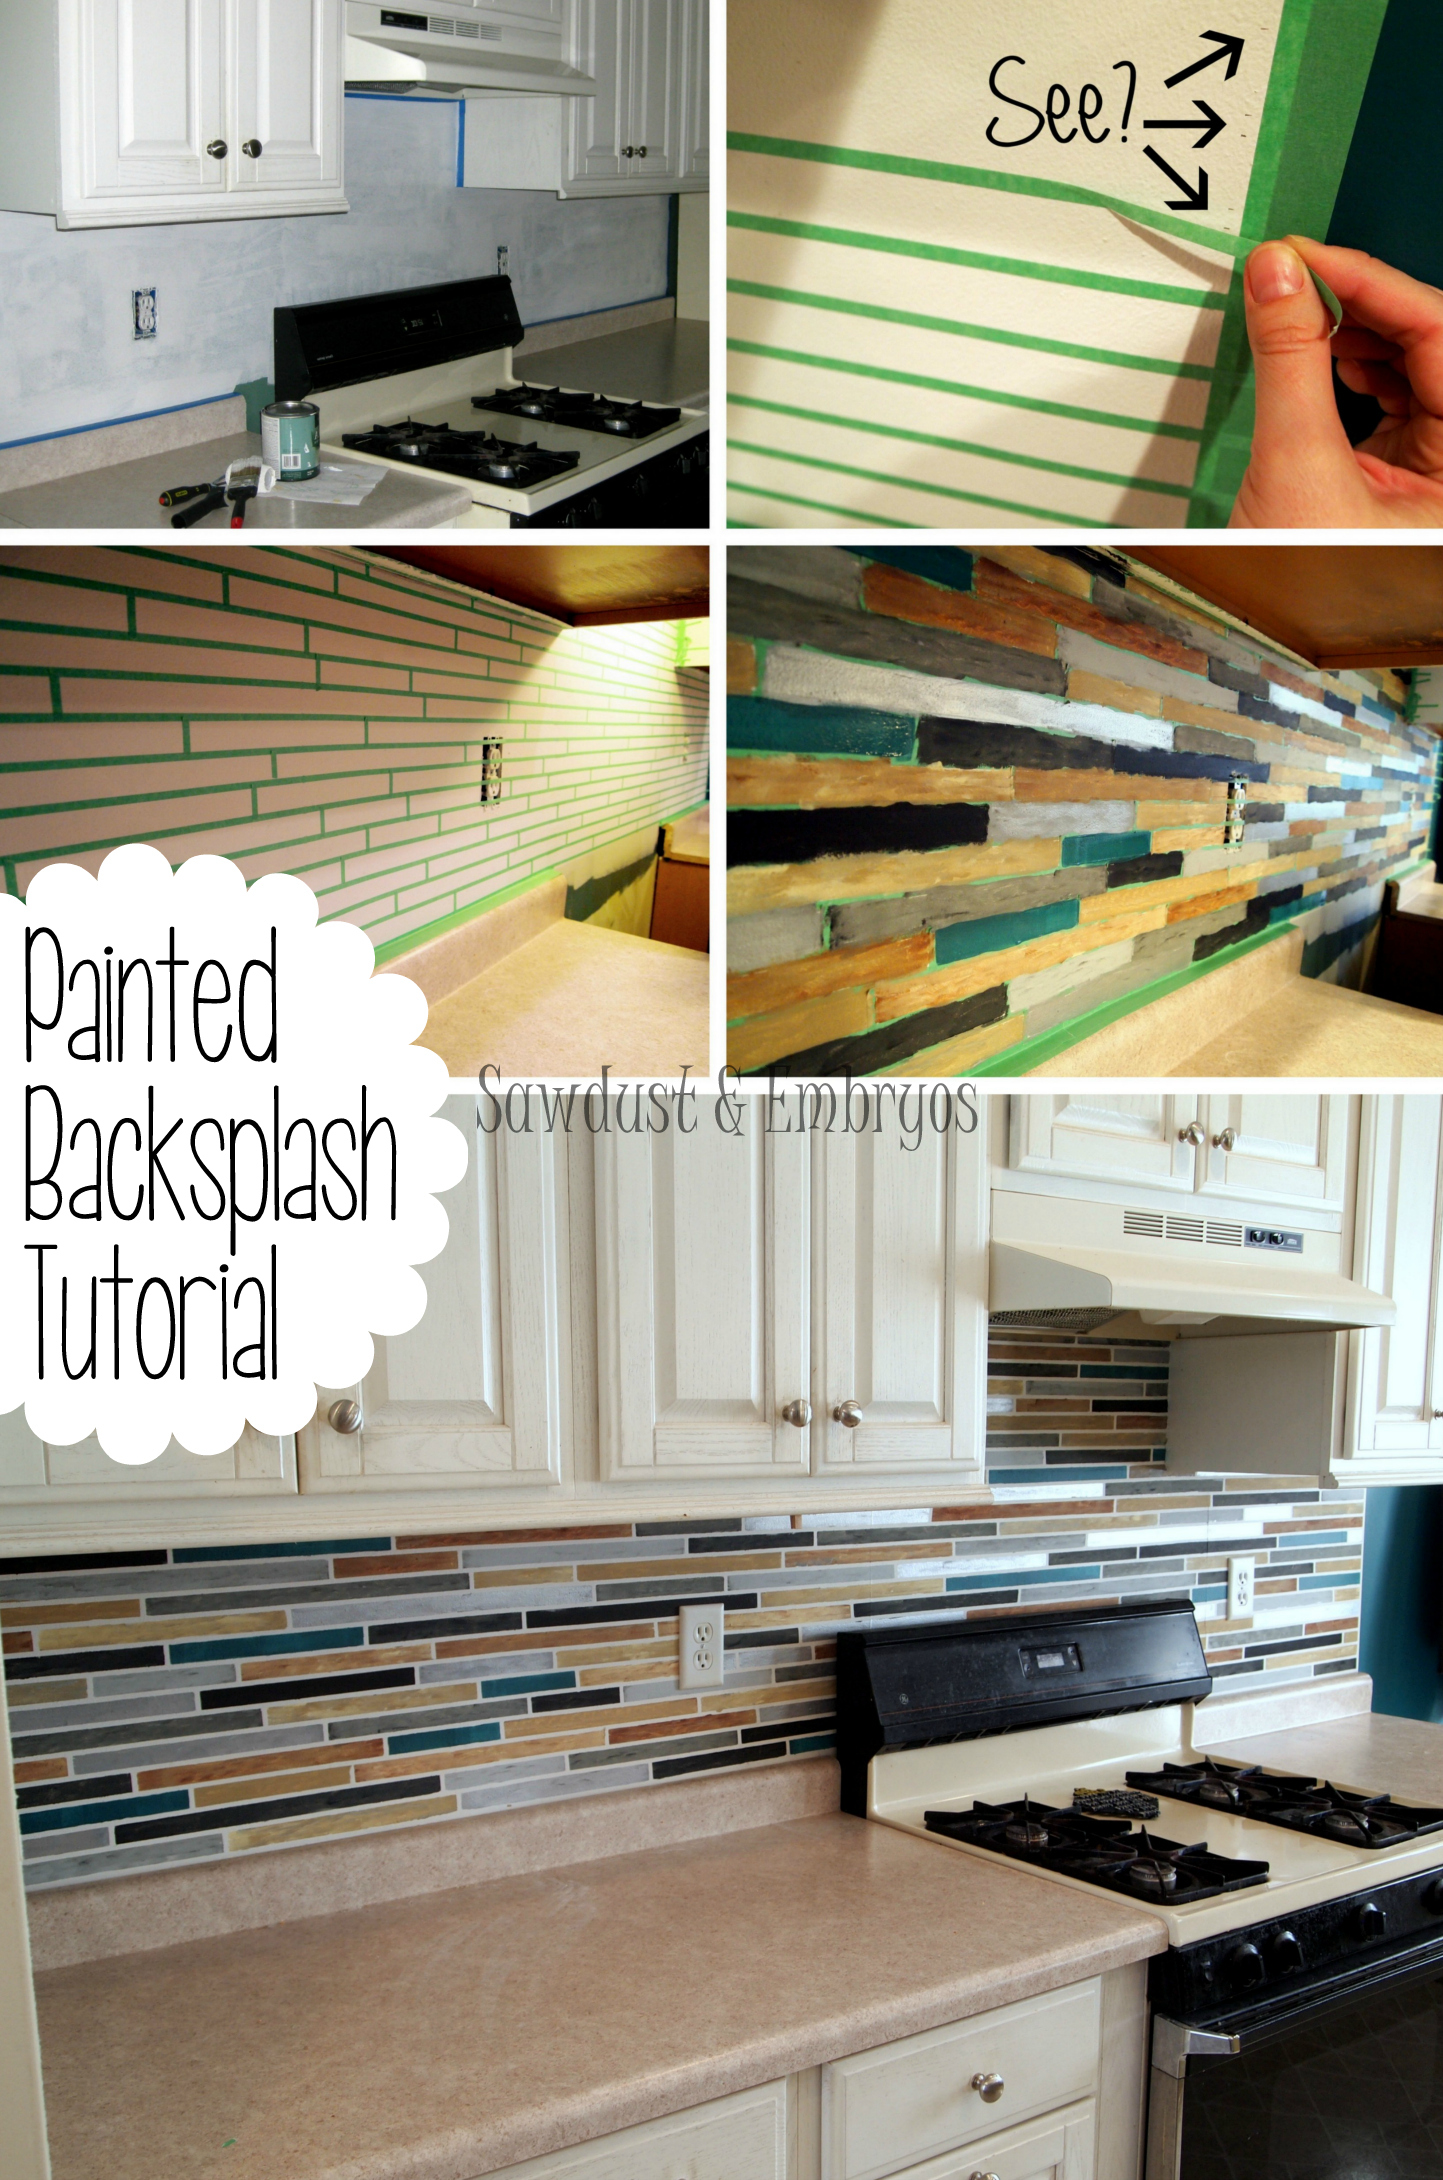 How to paint a backsplash to look like tile paint your backsplash to look like custom tile sawdust embryos dailygadgetfo Choice Image